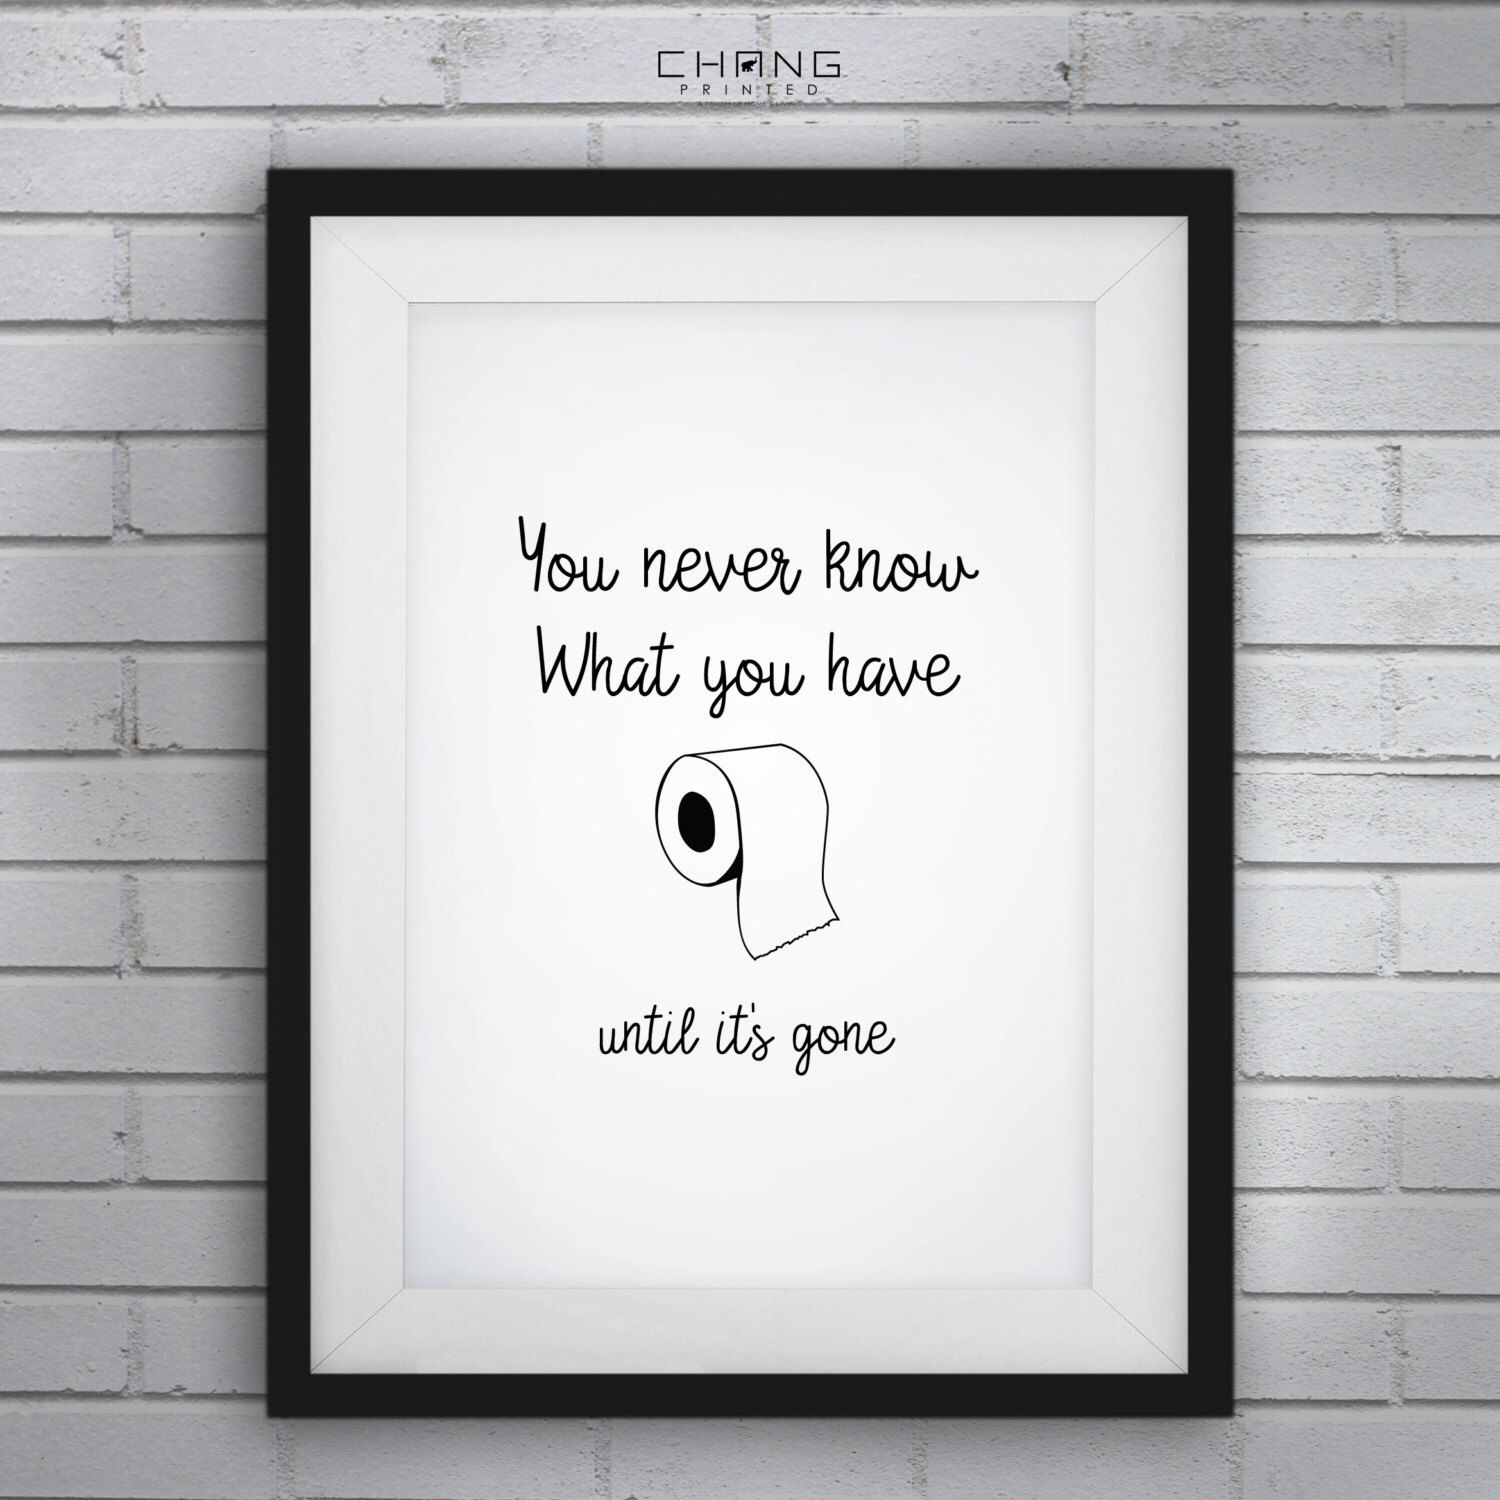 Funny wall art for bathrooms - Funny Bathroom Art Funny Bathroom Signs You Never Know What You Have Until It S Gone Bathroom Wall Art Bathroom Decor Funny Wall Art